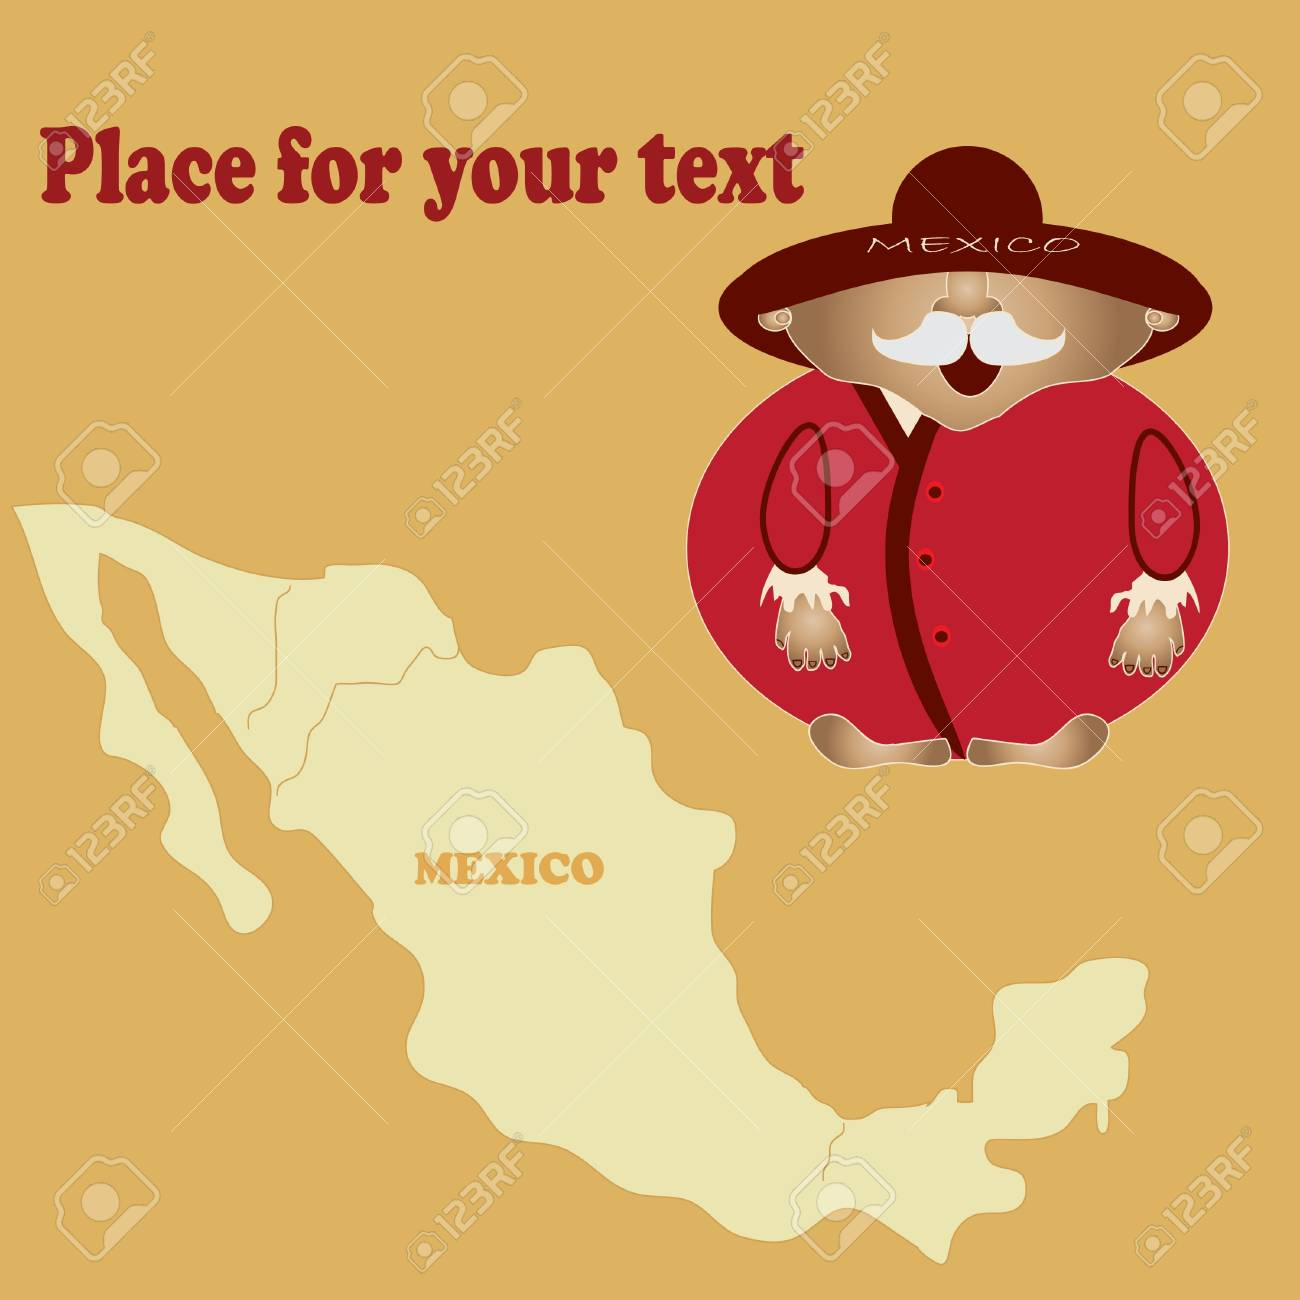 bright picture of a man from Mexico  Vector  Your text Stock Vector - 13993960